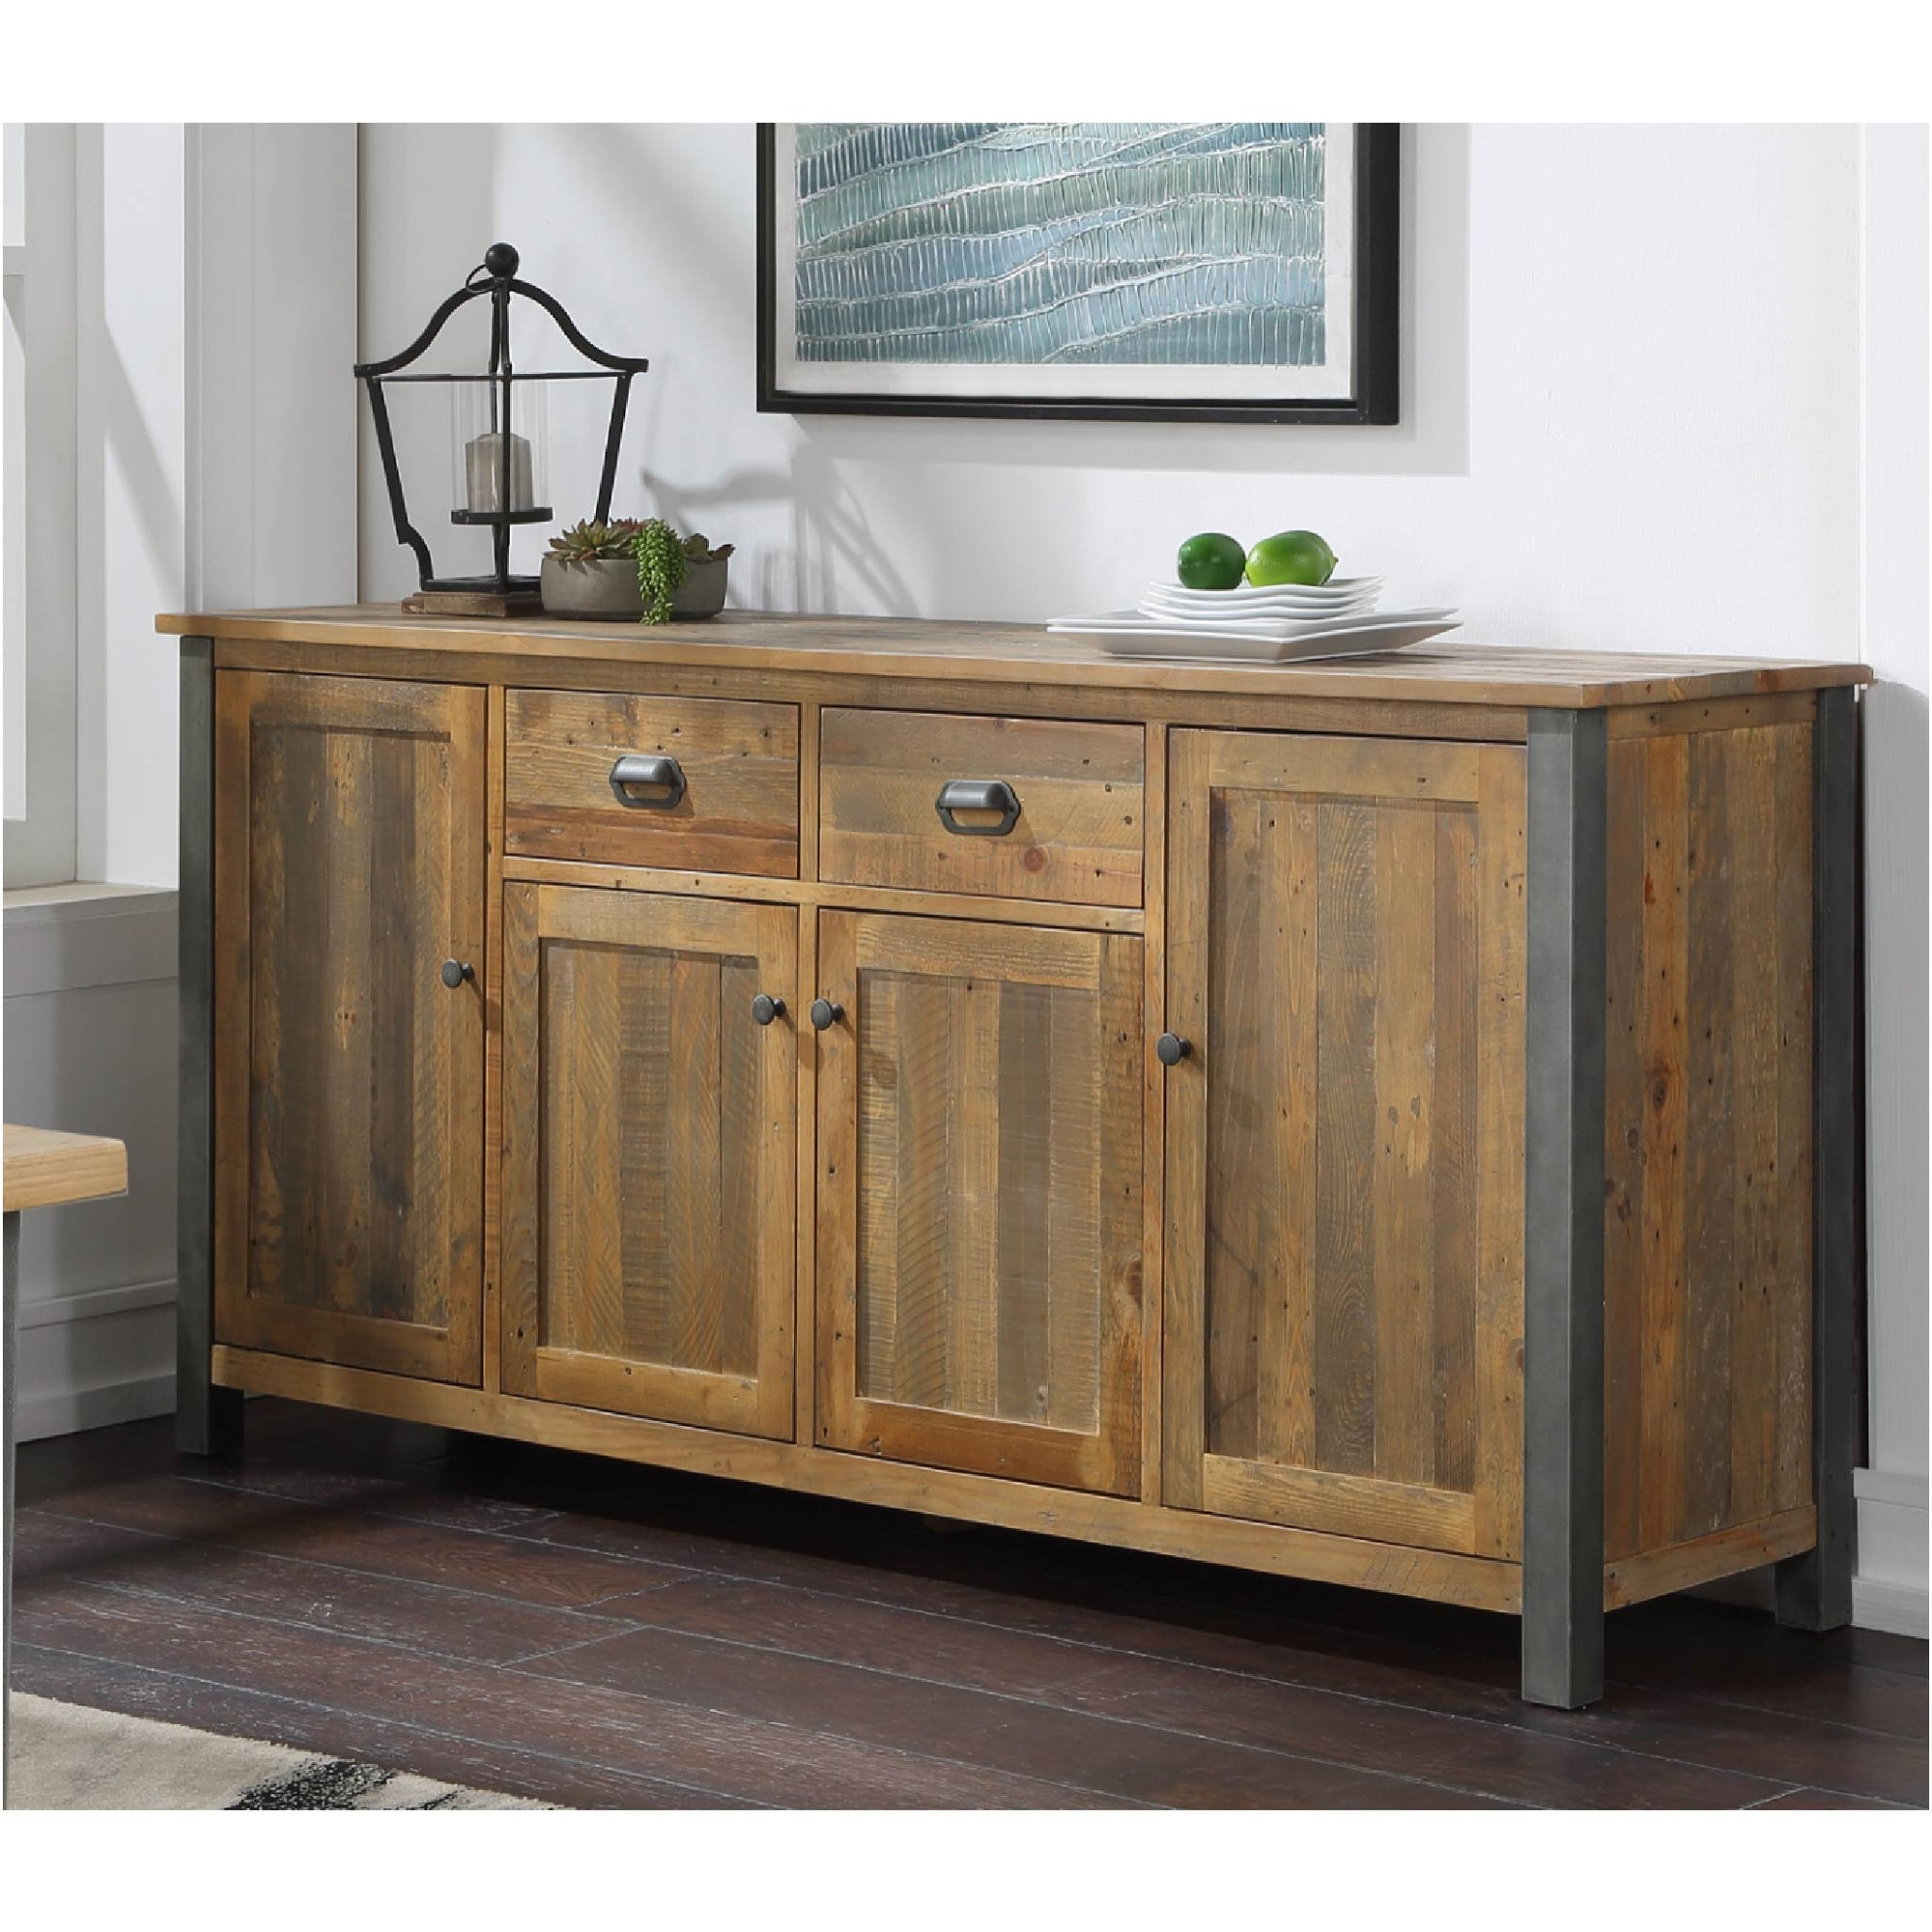 Urban Elegance Reclaimed Wood Extra Large Sideboard